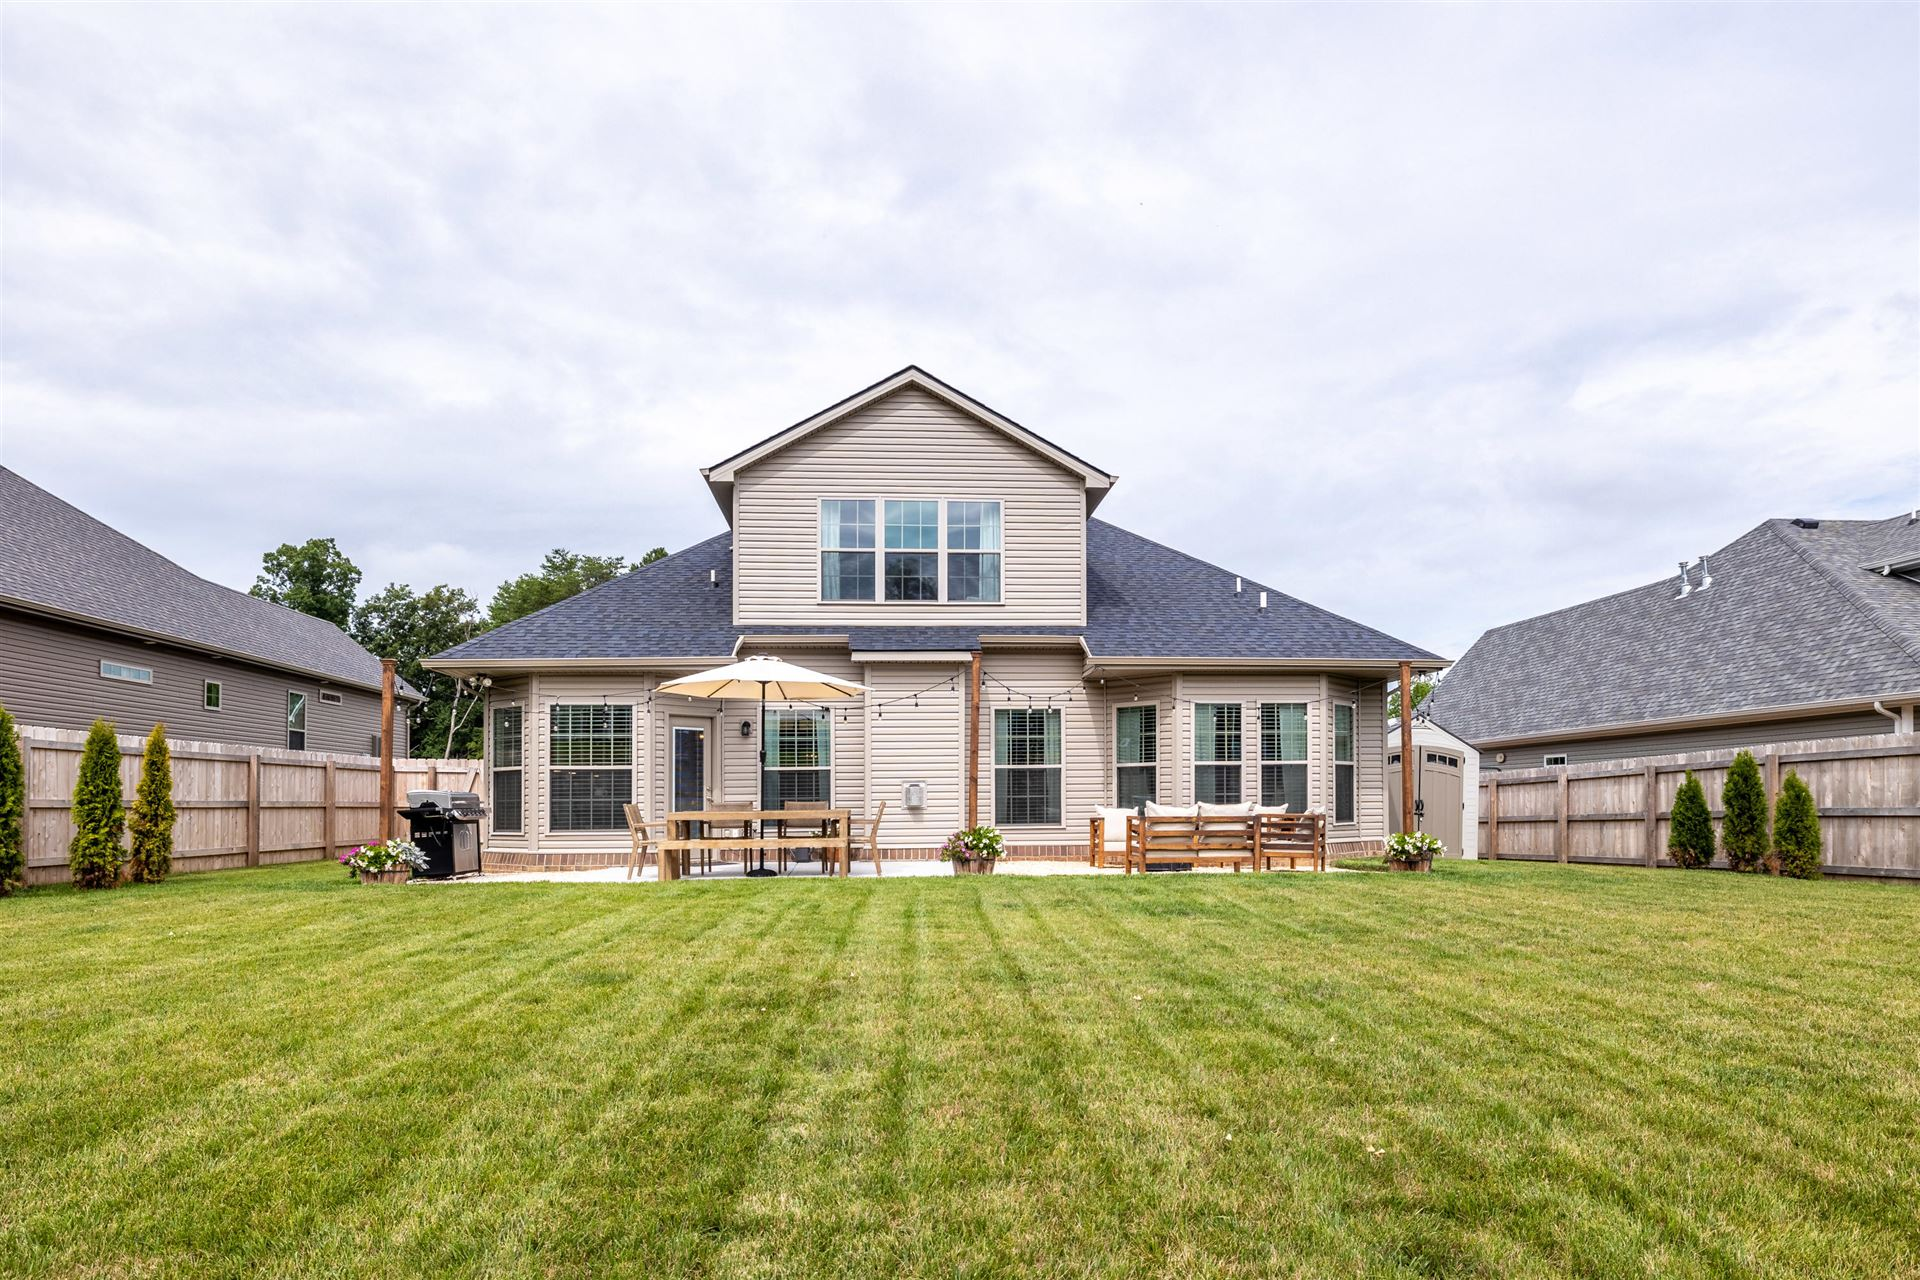 Photo of 4872 Masters Drive, Maryville, TN 37801 (MLS # 1161177)